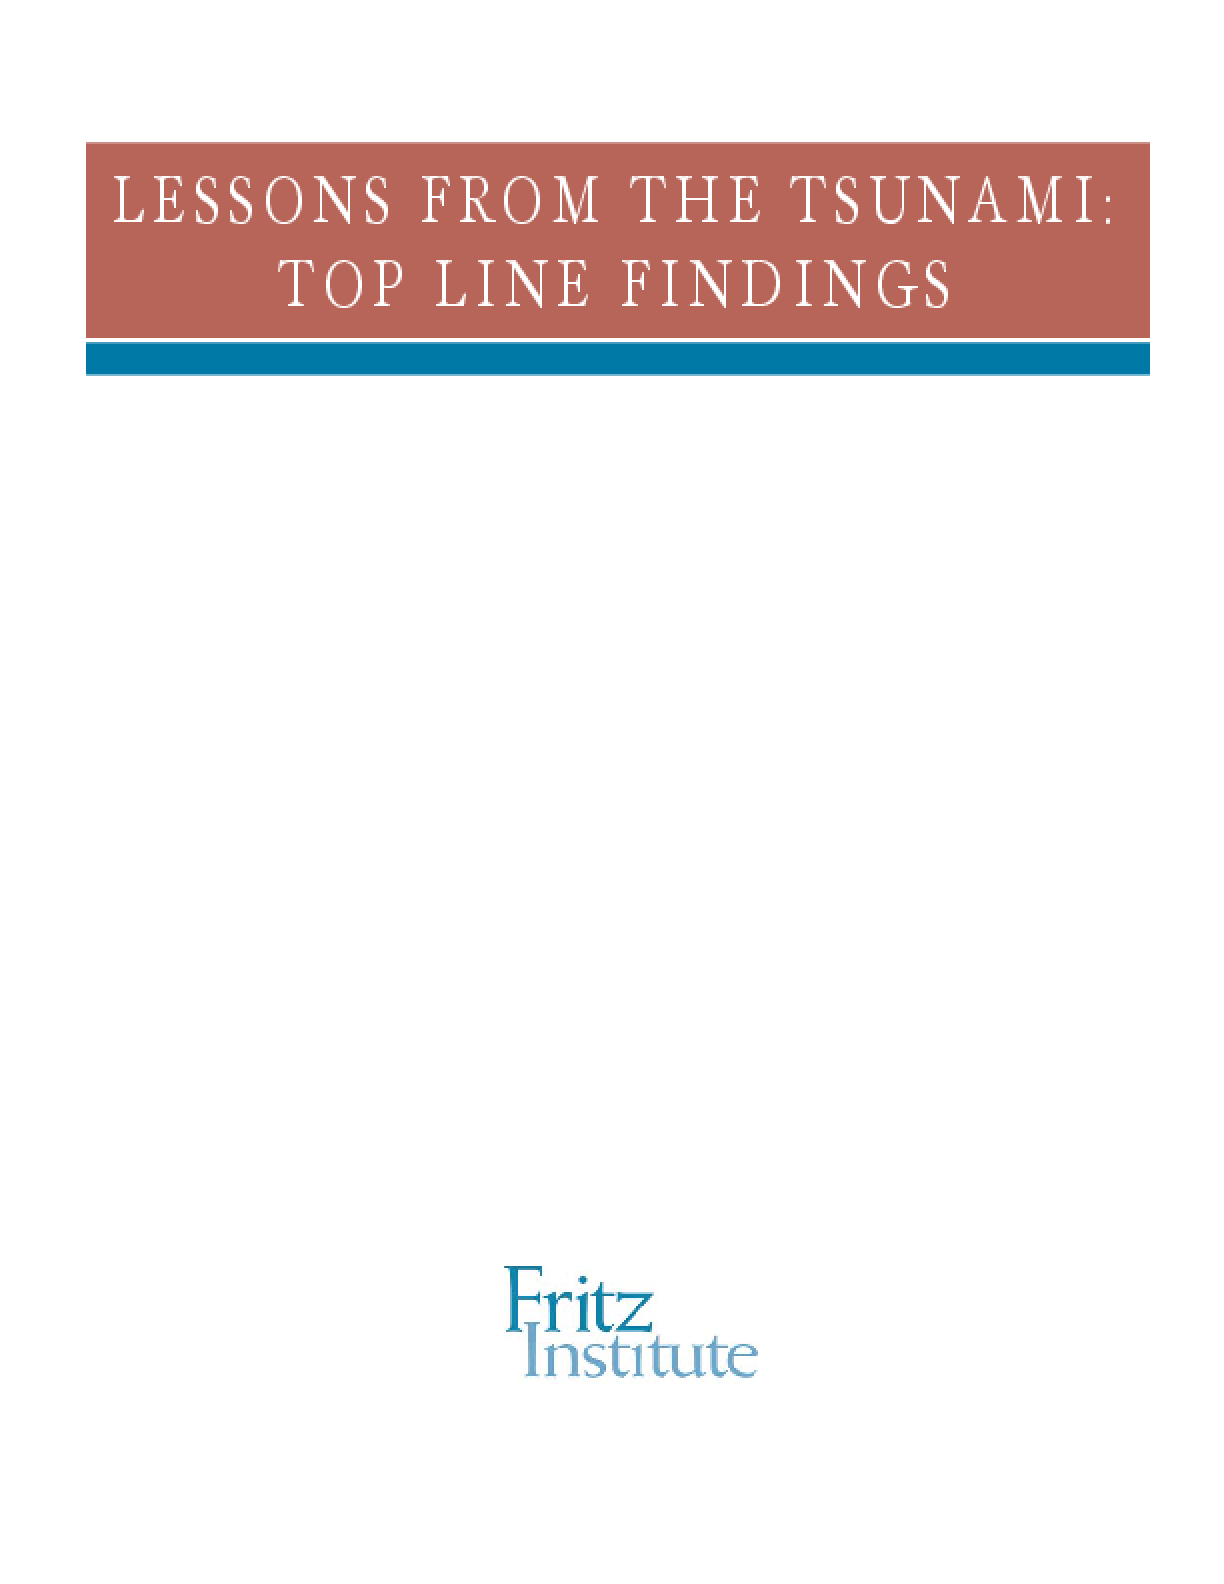 Lessons From the Tsunami: Top Line Findings